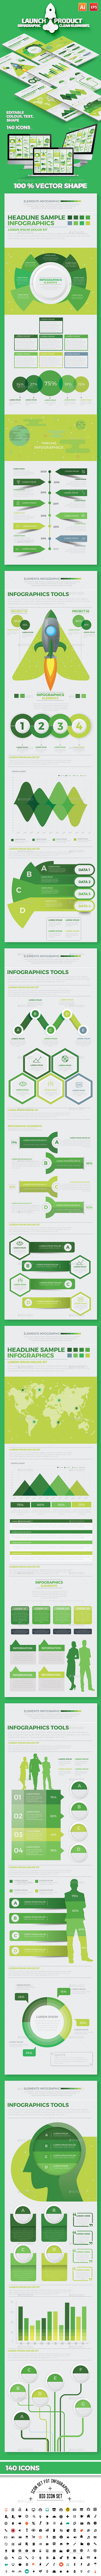 Green - Business - Start Up Infographic Set - Infographics